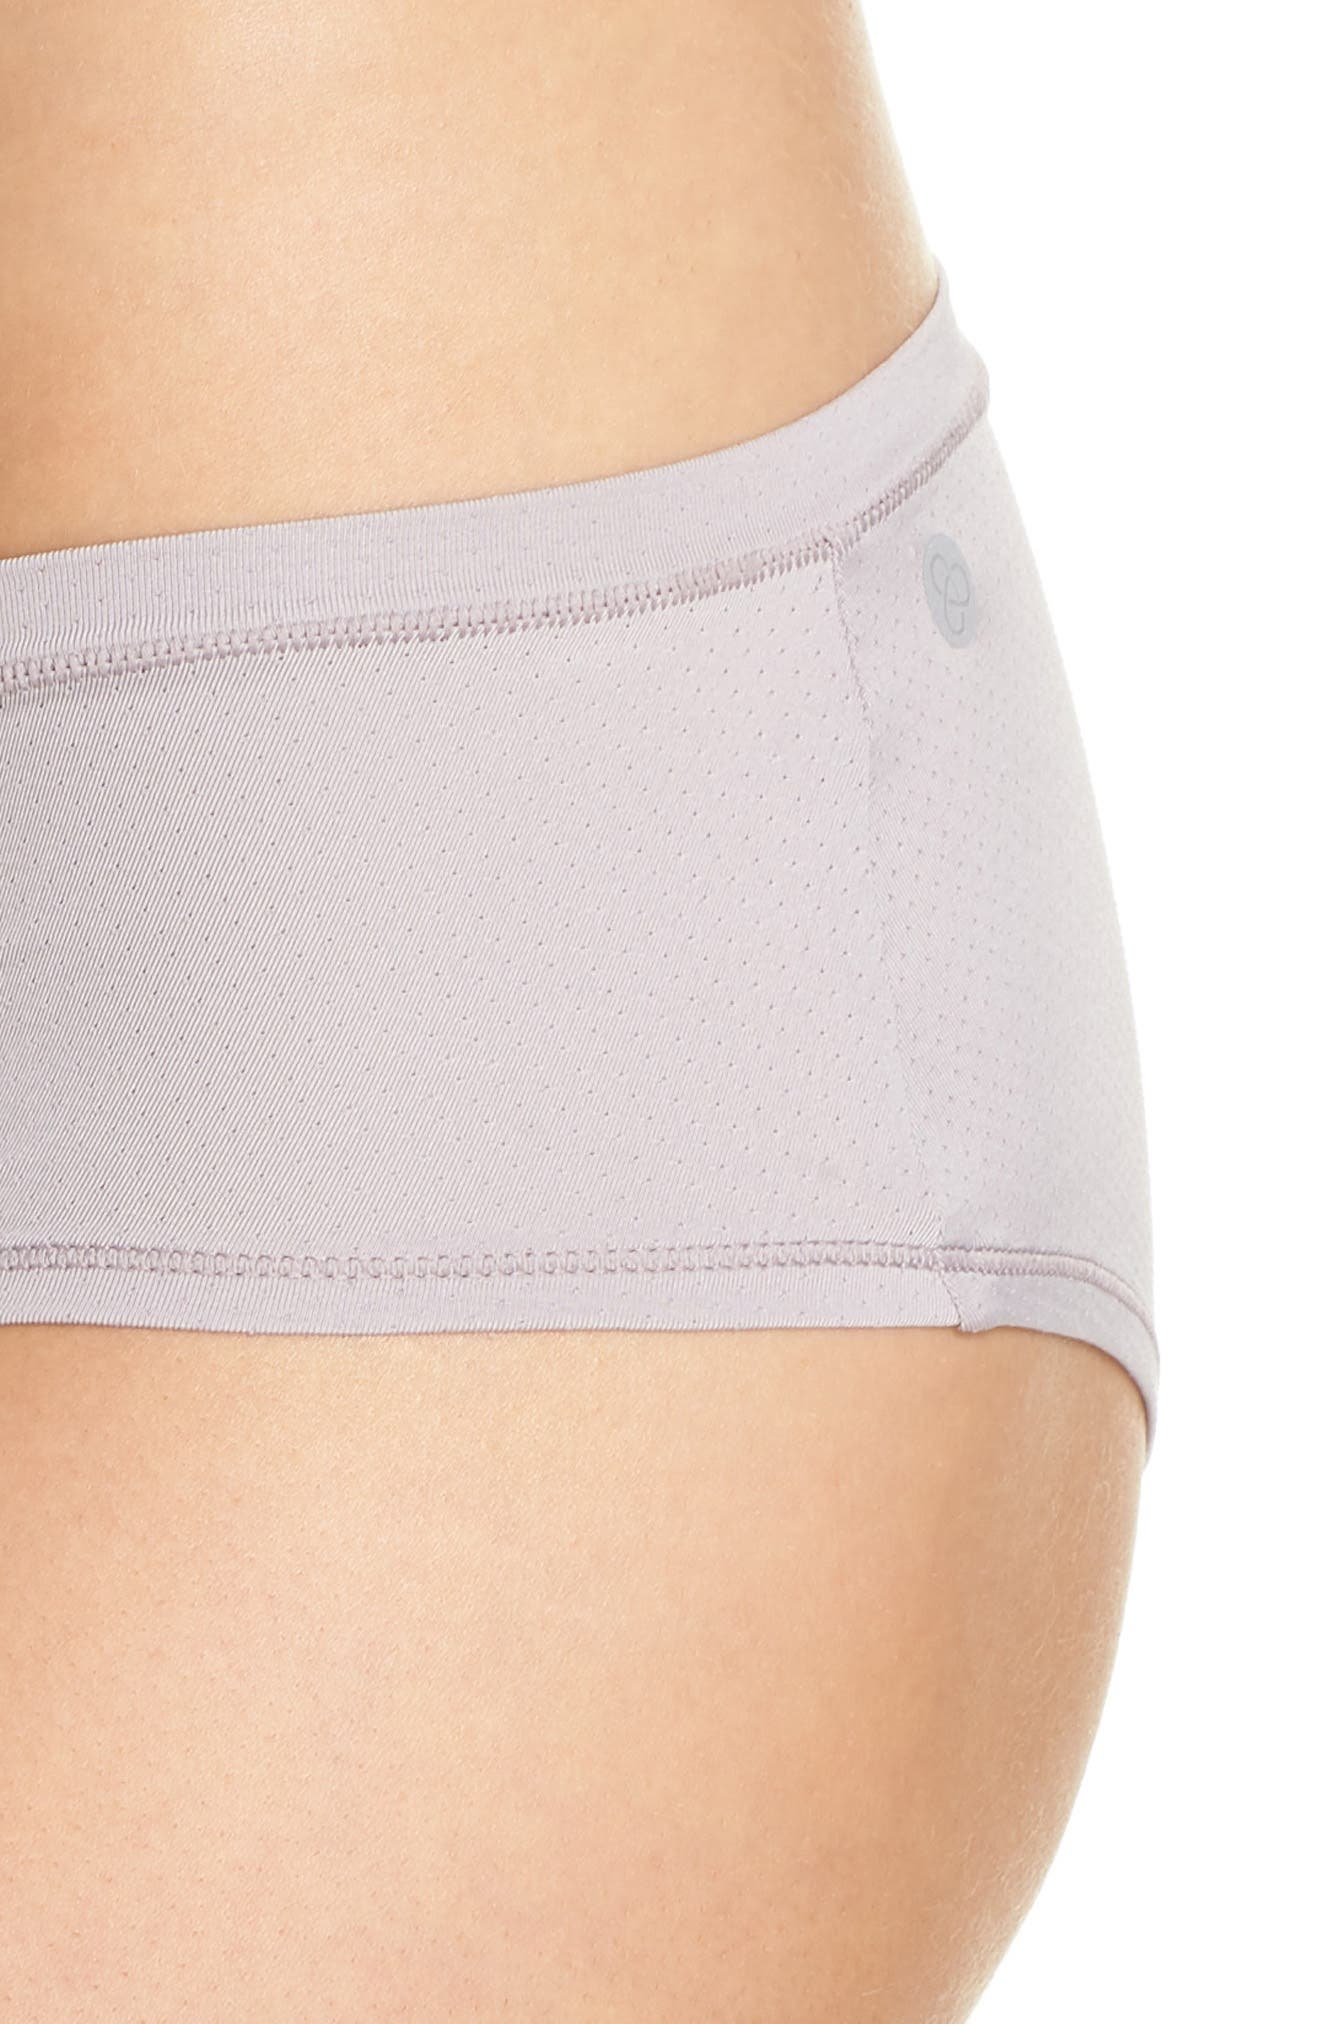 Active Mesh Hipster Briefs,                             Alternate thumbnail 4, color,                             050